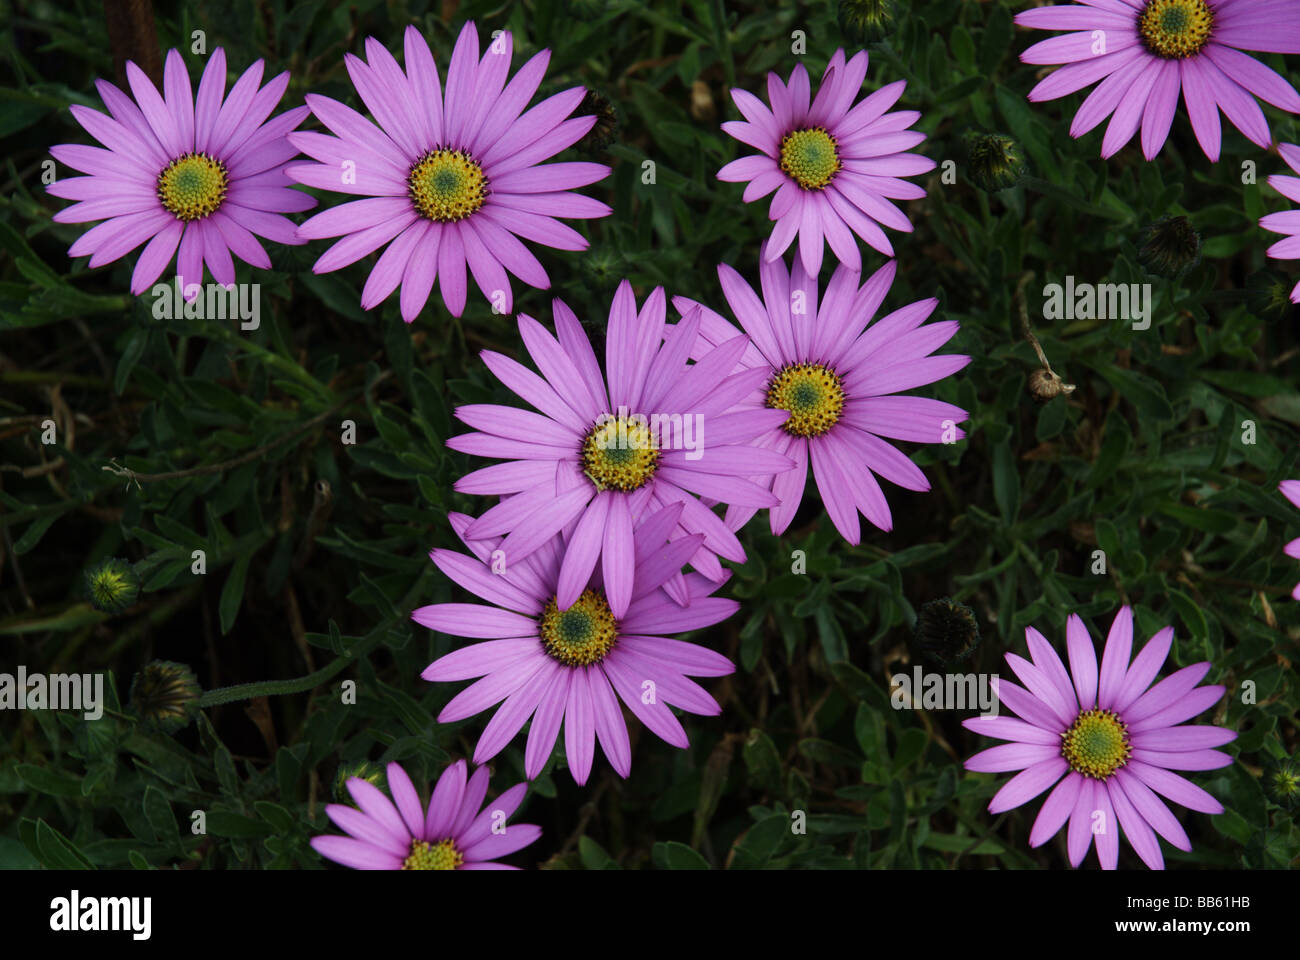 Osteospermum Barberae Purple Flower Flowers Daisy Like Stock Photos